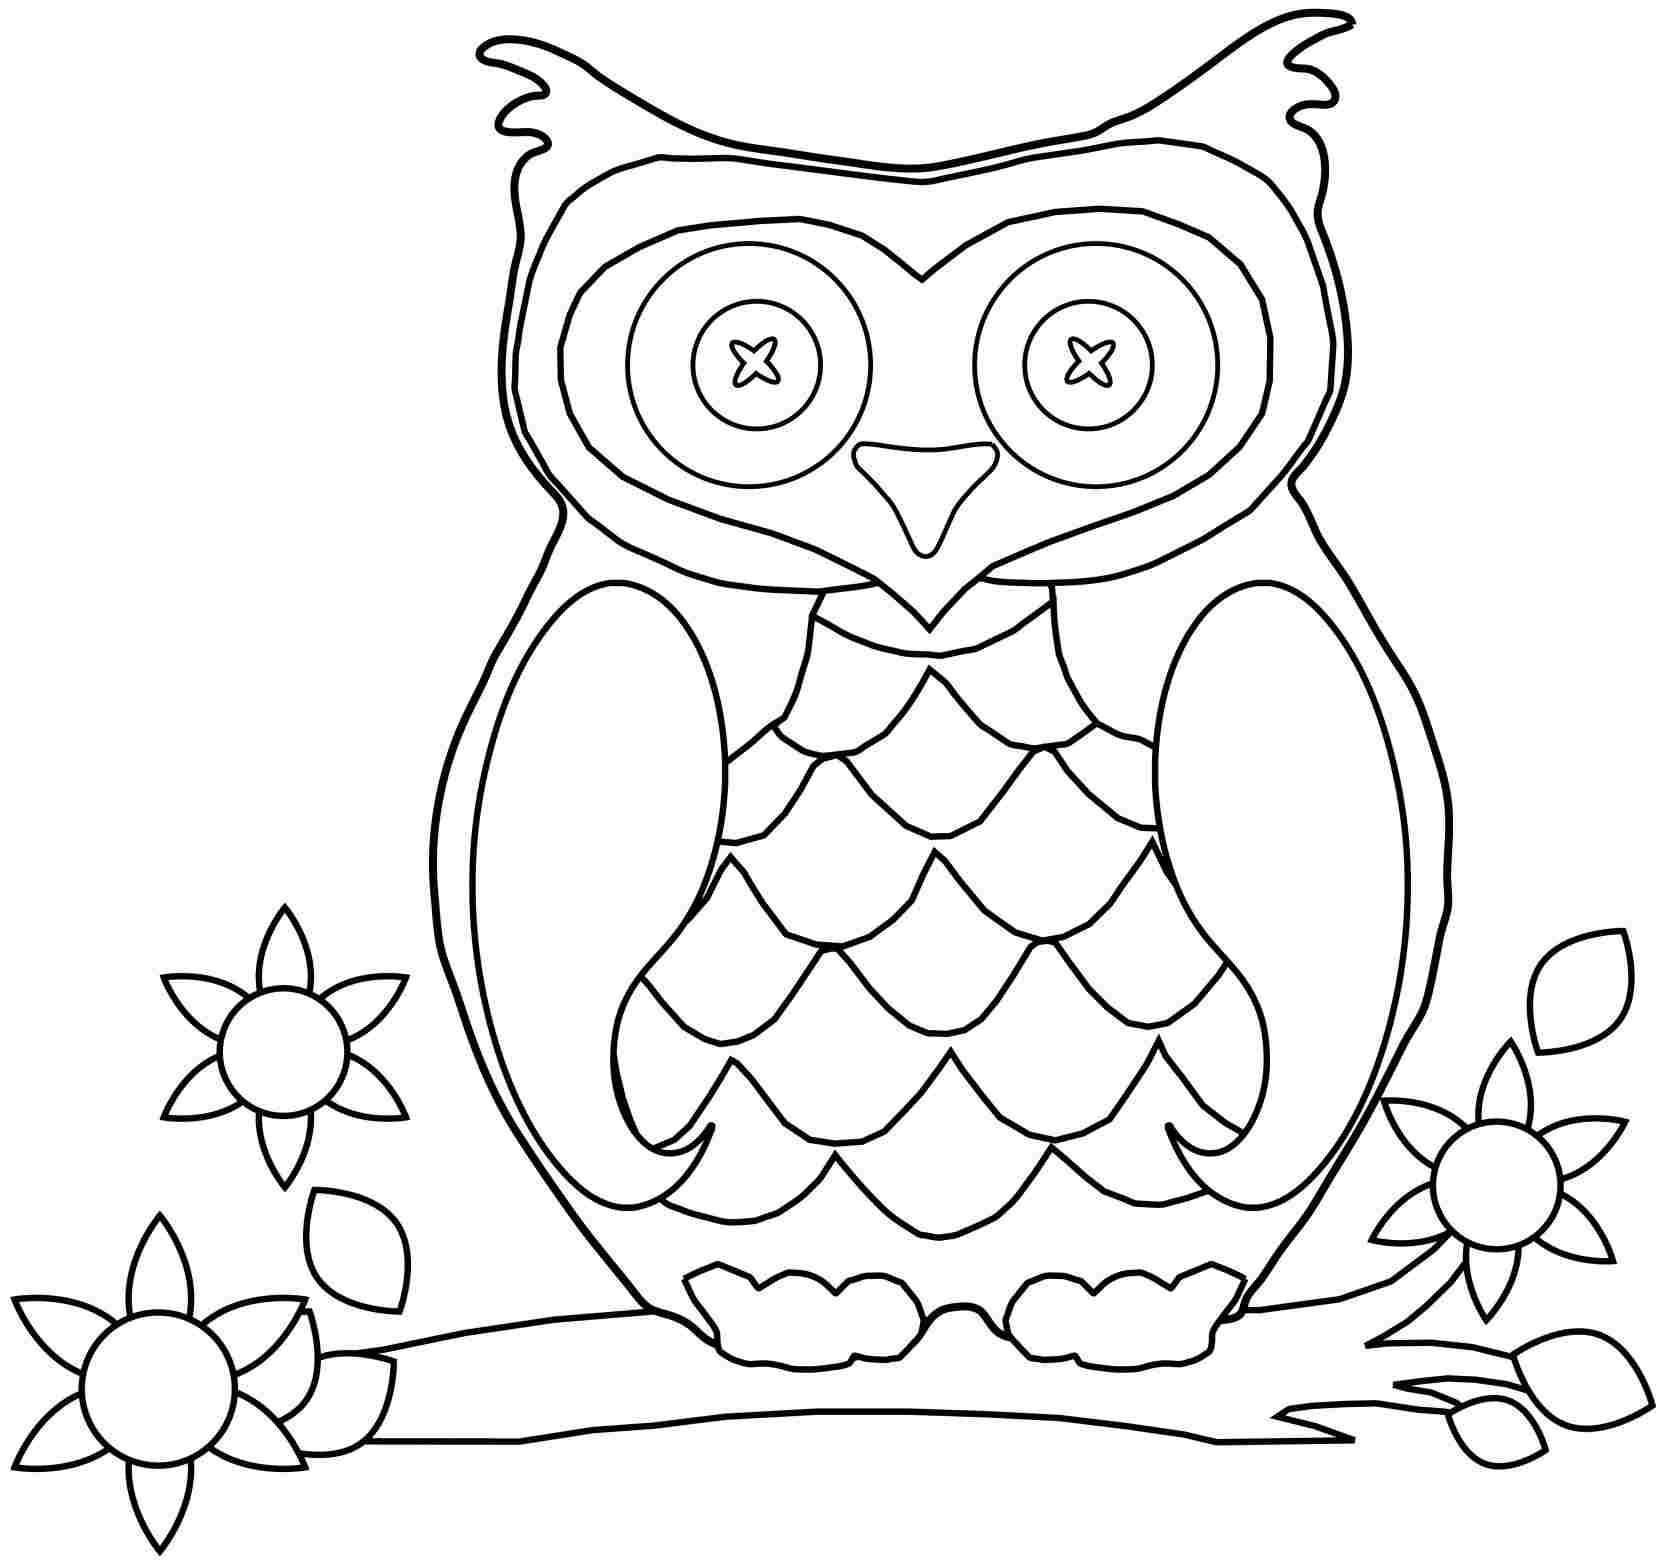 9 Free Owl Coloring Pages Rallytv Org Adorable For Kids Minion